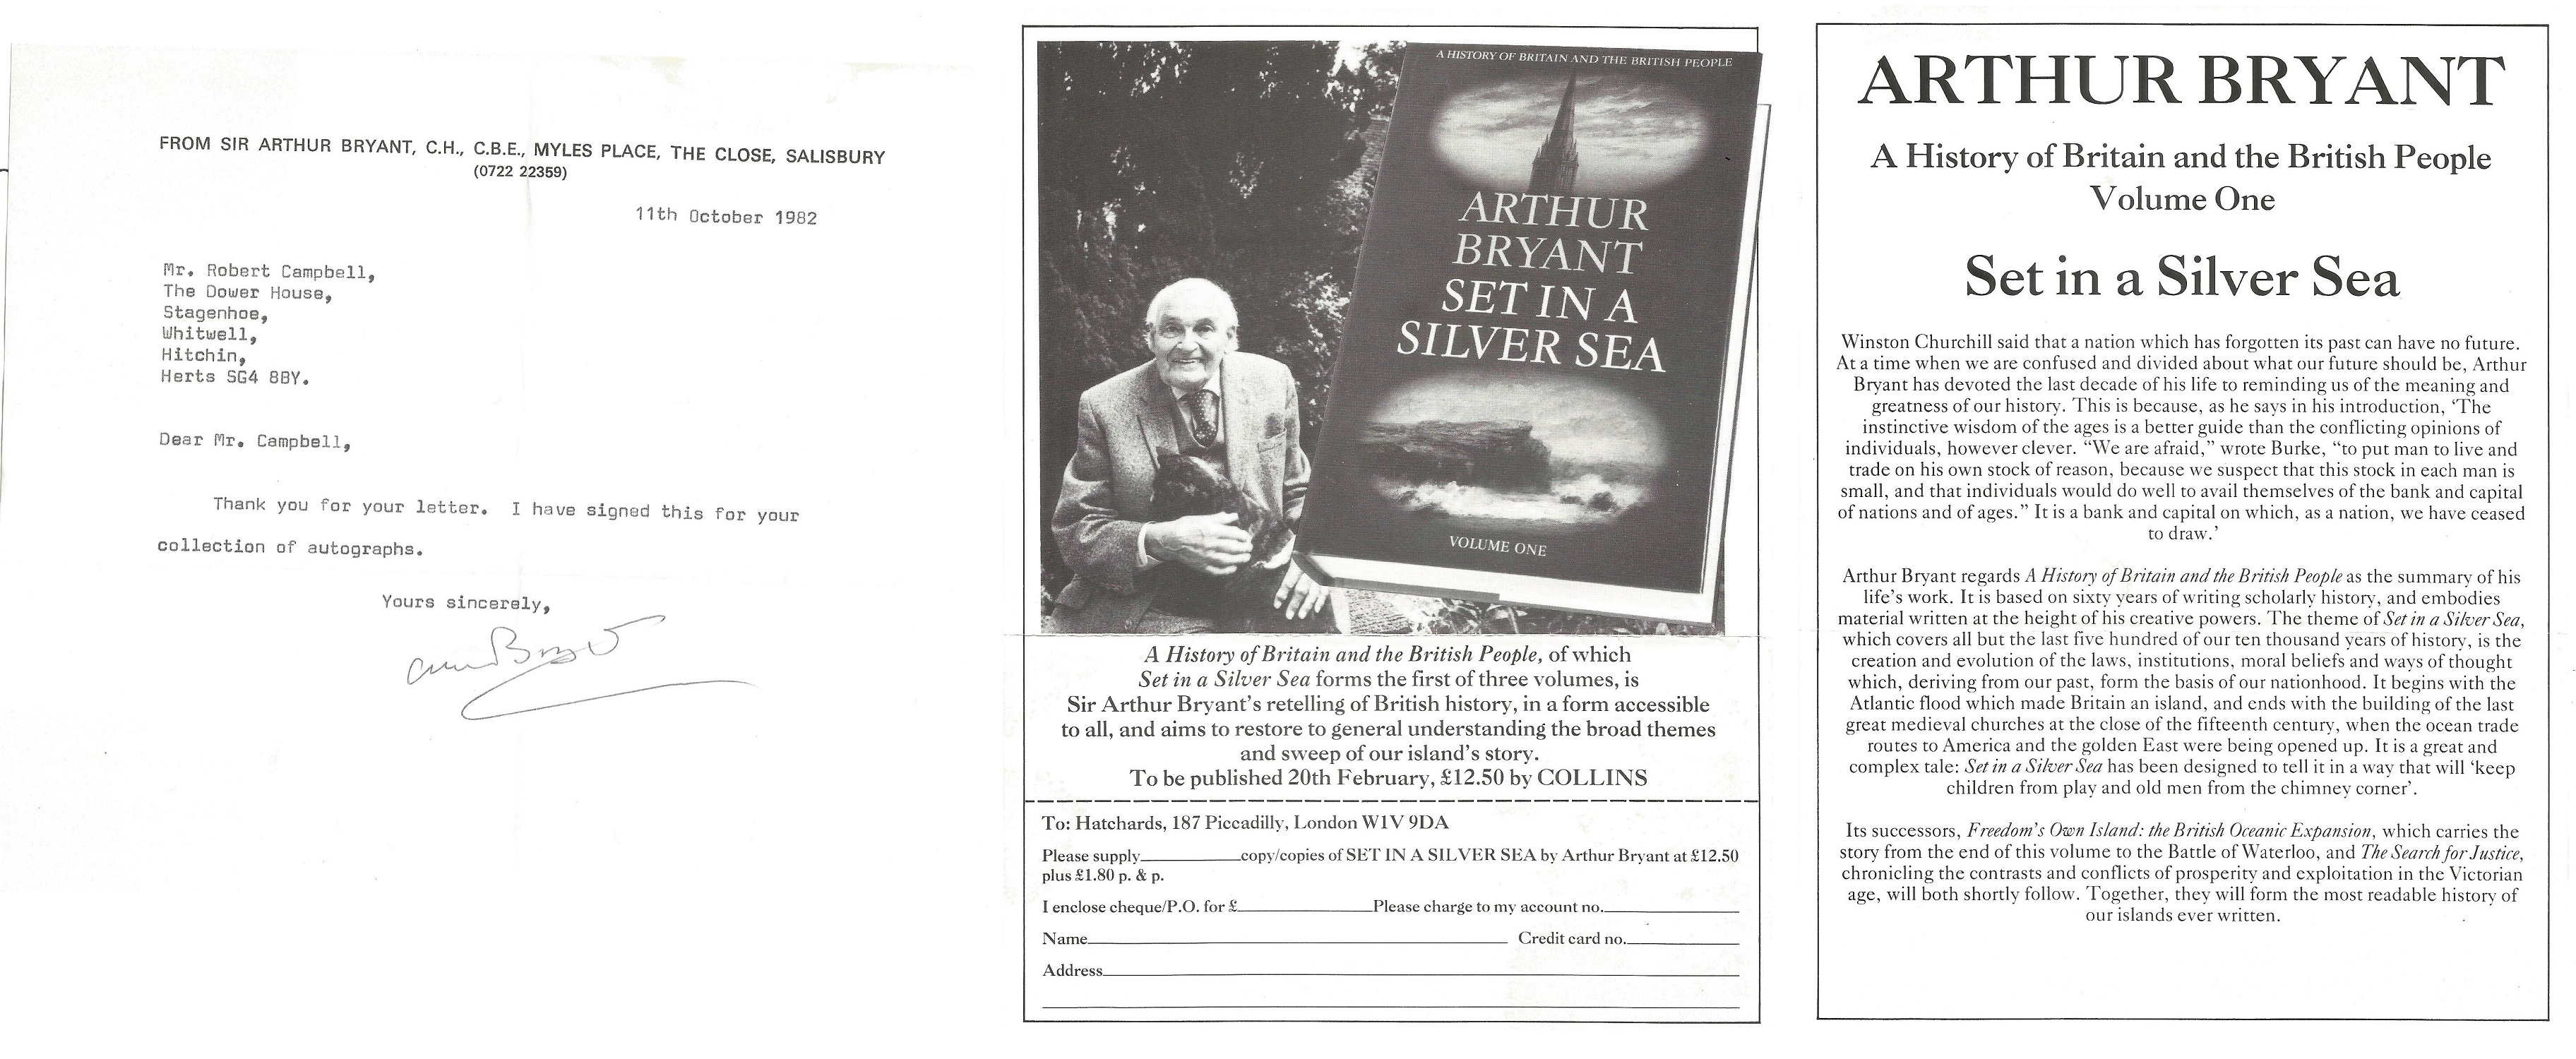 Sir Arthur Bryant TLS dated 11th October 1982, includes a black & white advertisement for his book